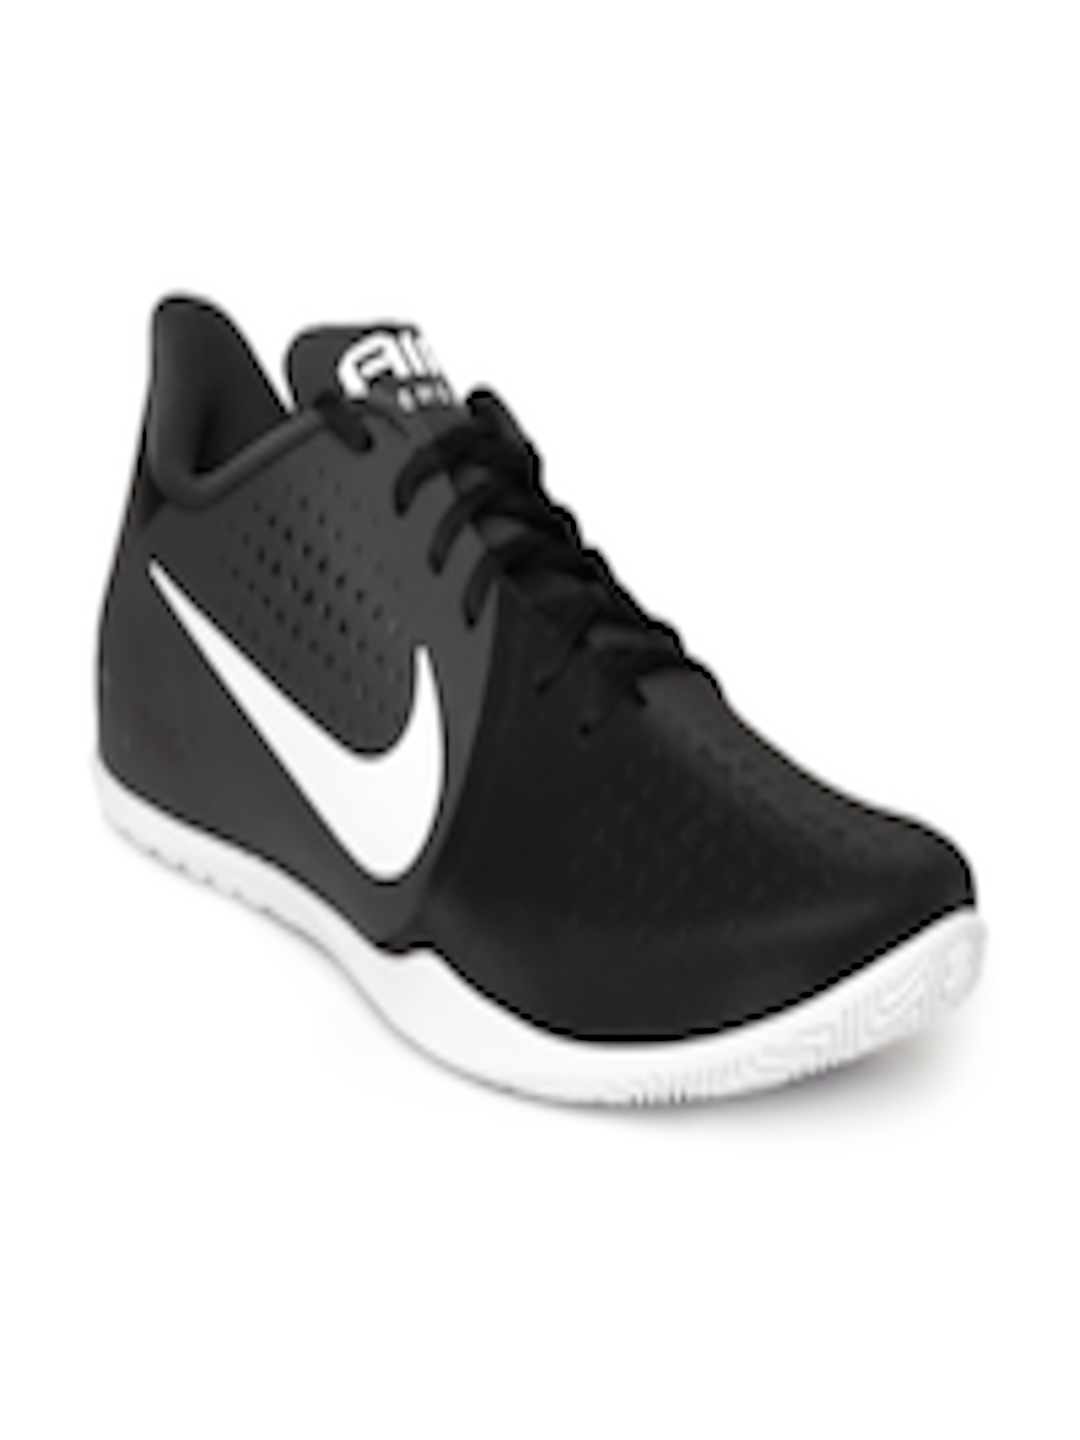 huge discount 29977 77542 Previous Buy Nike Men Black Air Behold Low Basketball Shoes - Sports Shoes  for Men 1800993 Myntra ...